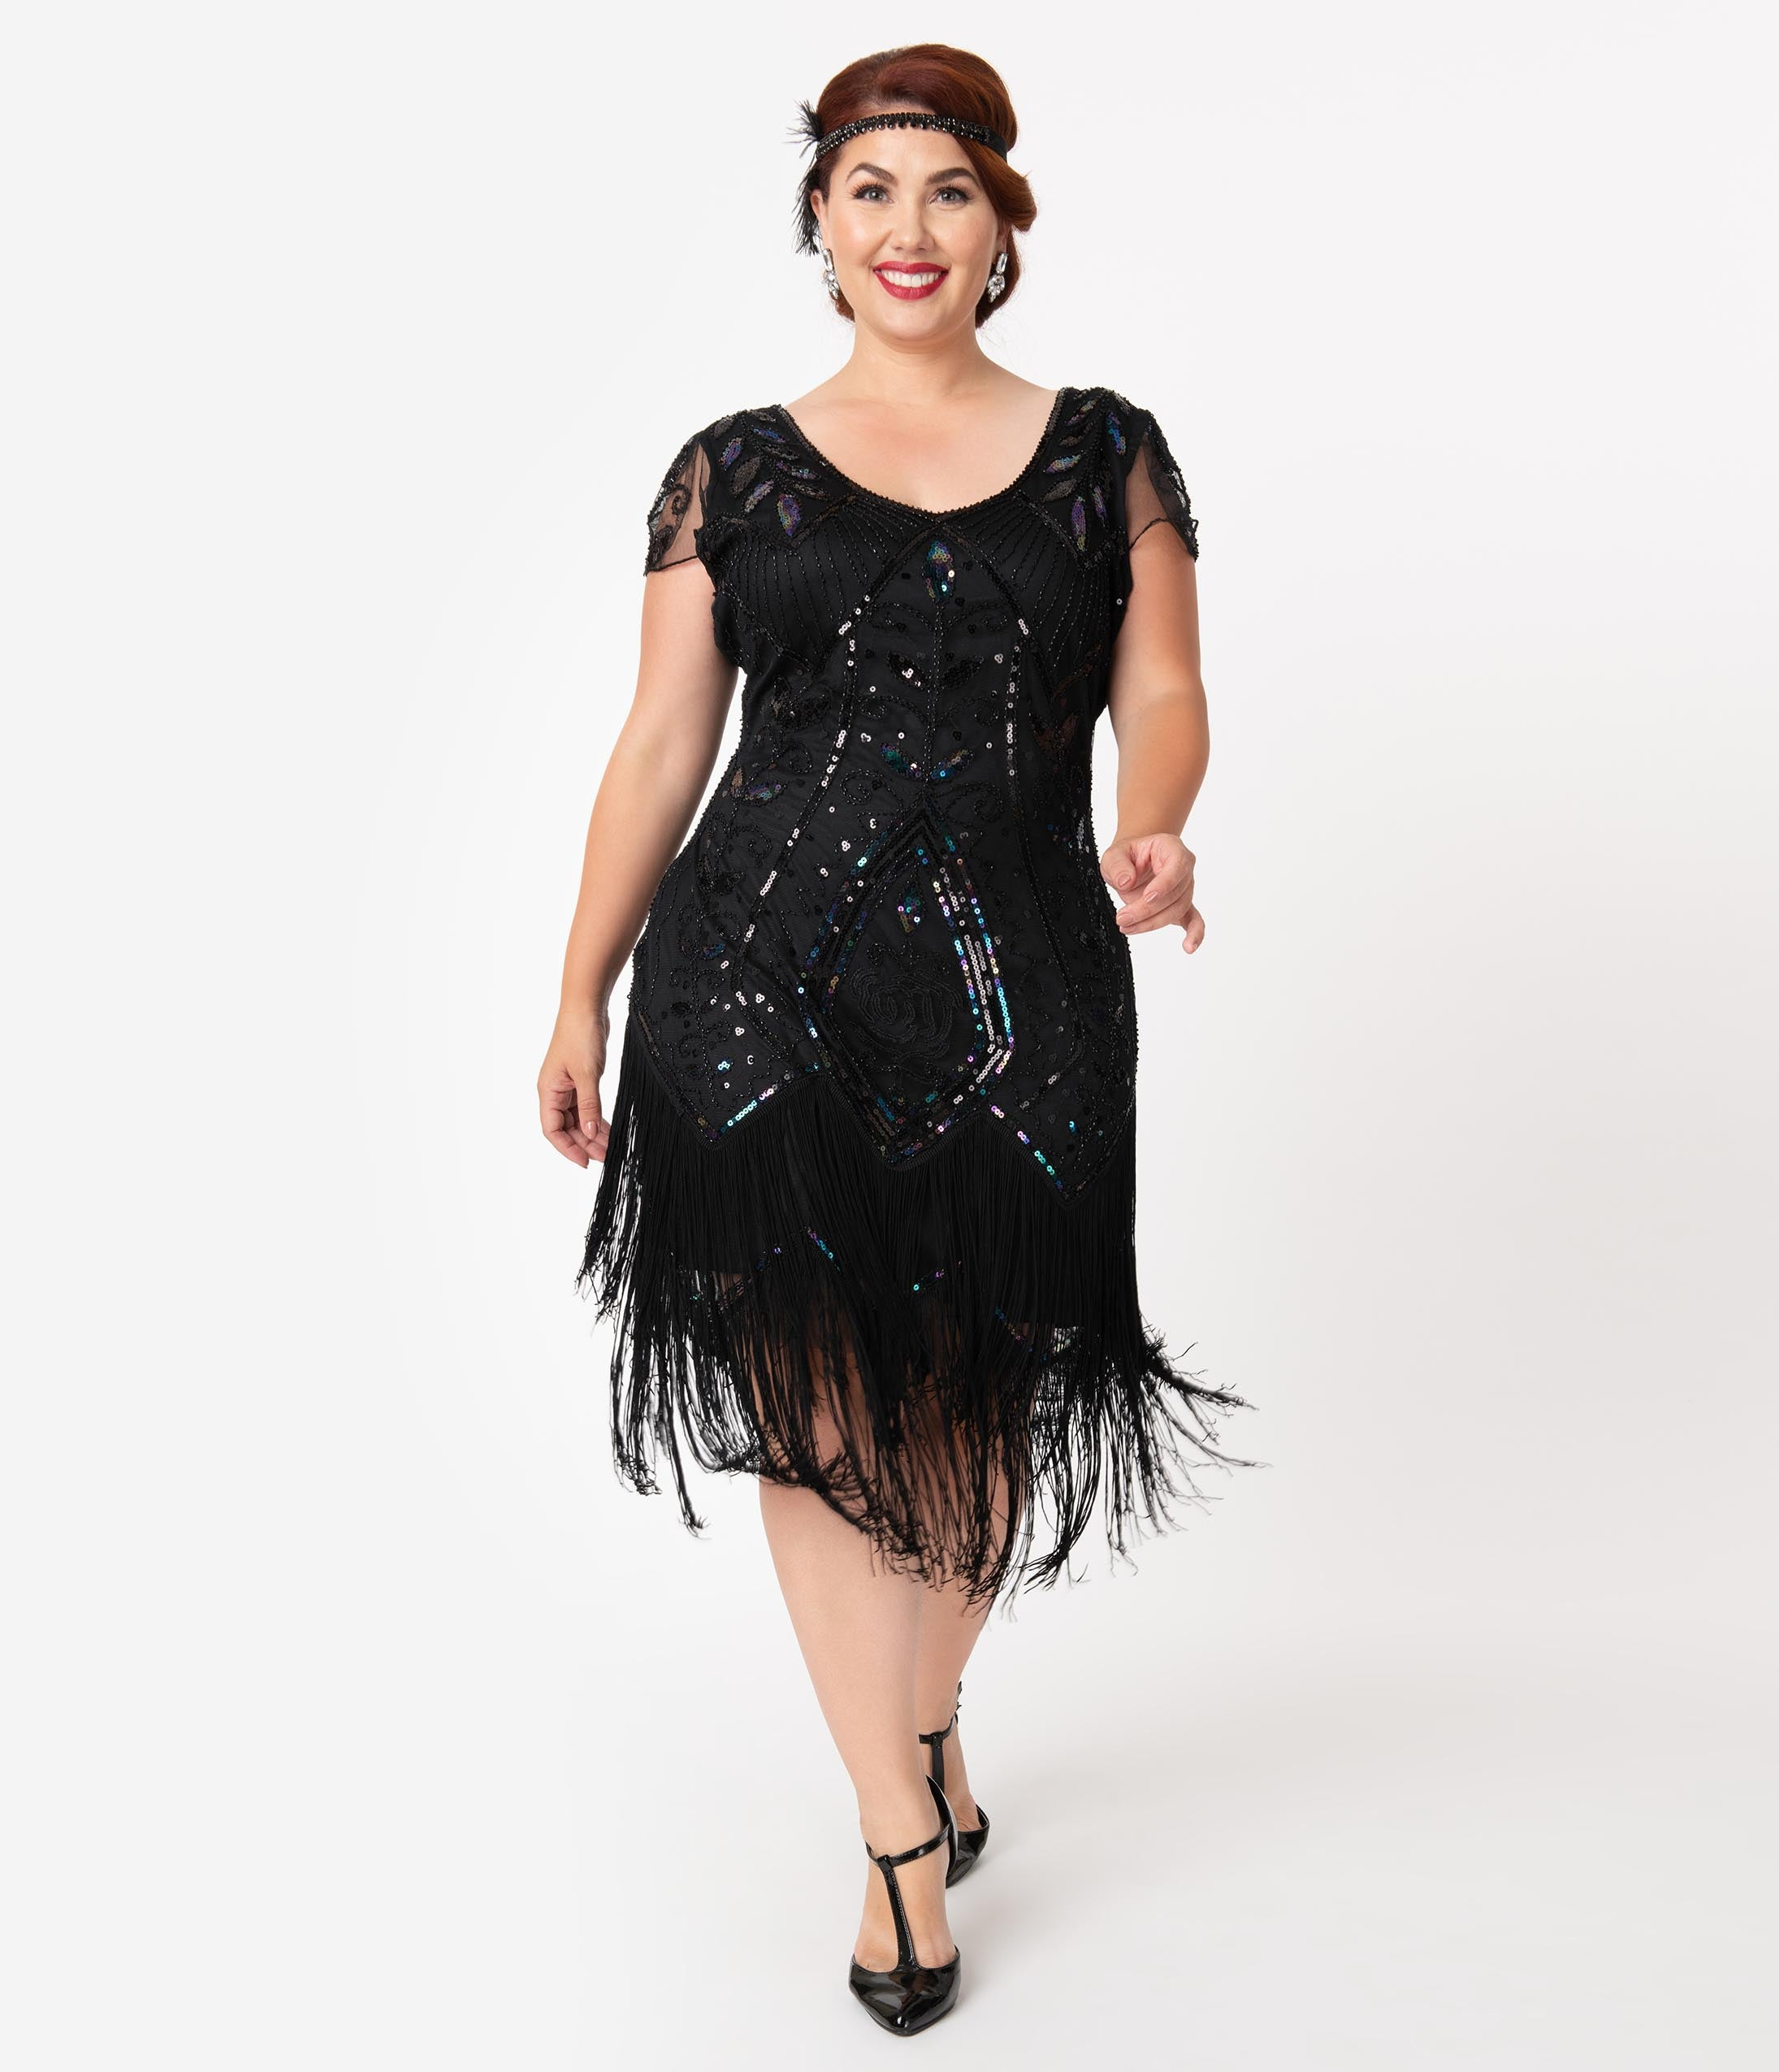 1920s Plus Size Flapper Dresses, Gatsby Dresses, Flapper Costumes Unique Vintage Plus Size 1920S Black Beaded Noele Fringe Flapper Dress $98.00 AT vintagedancer.com